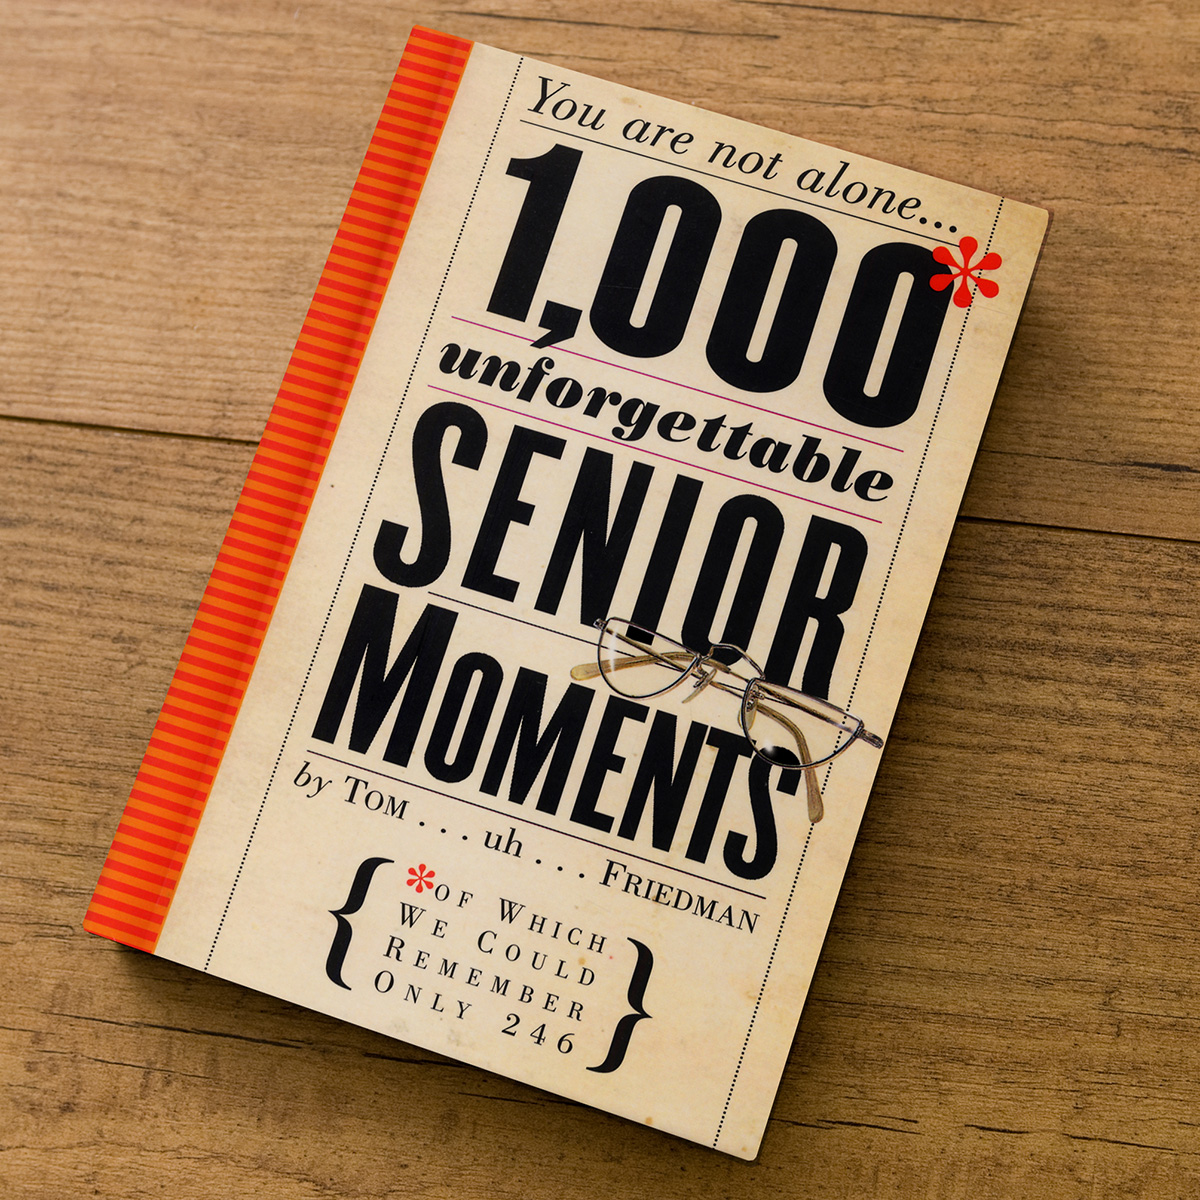 Image of 1000 Unforgettable Senior Moments - Gift Book